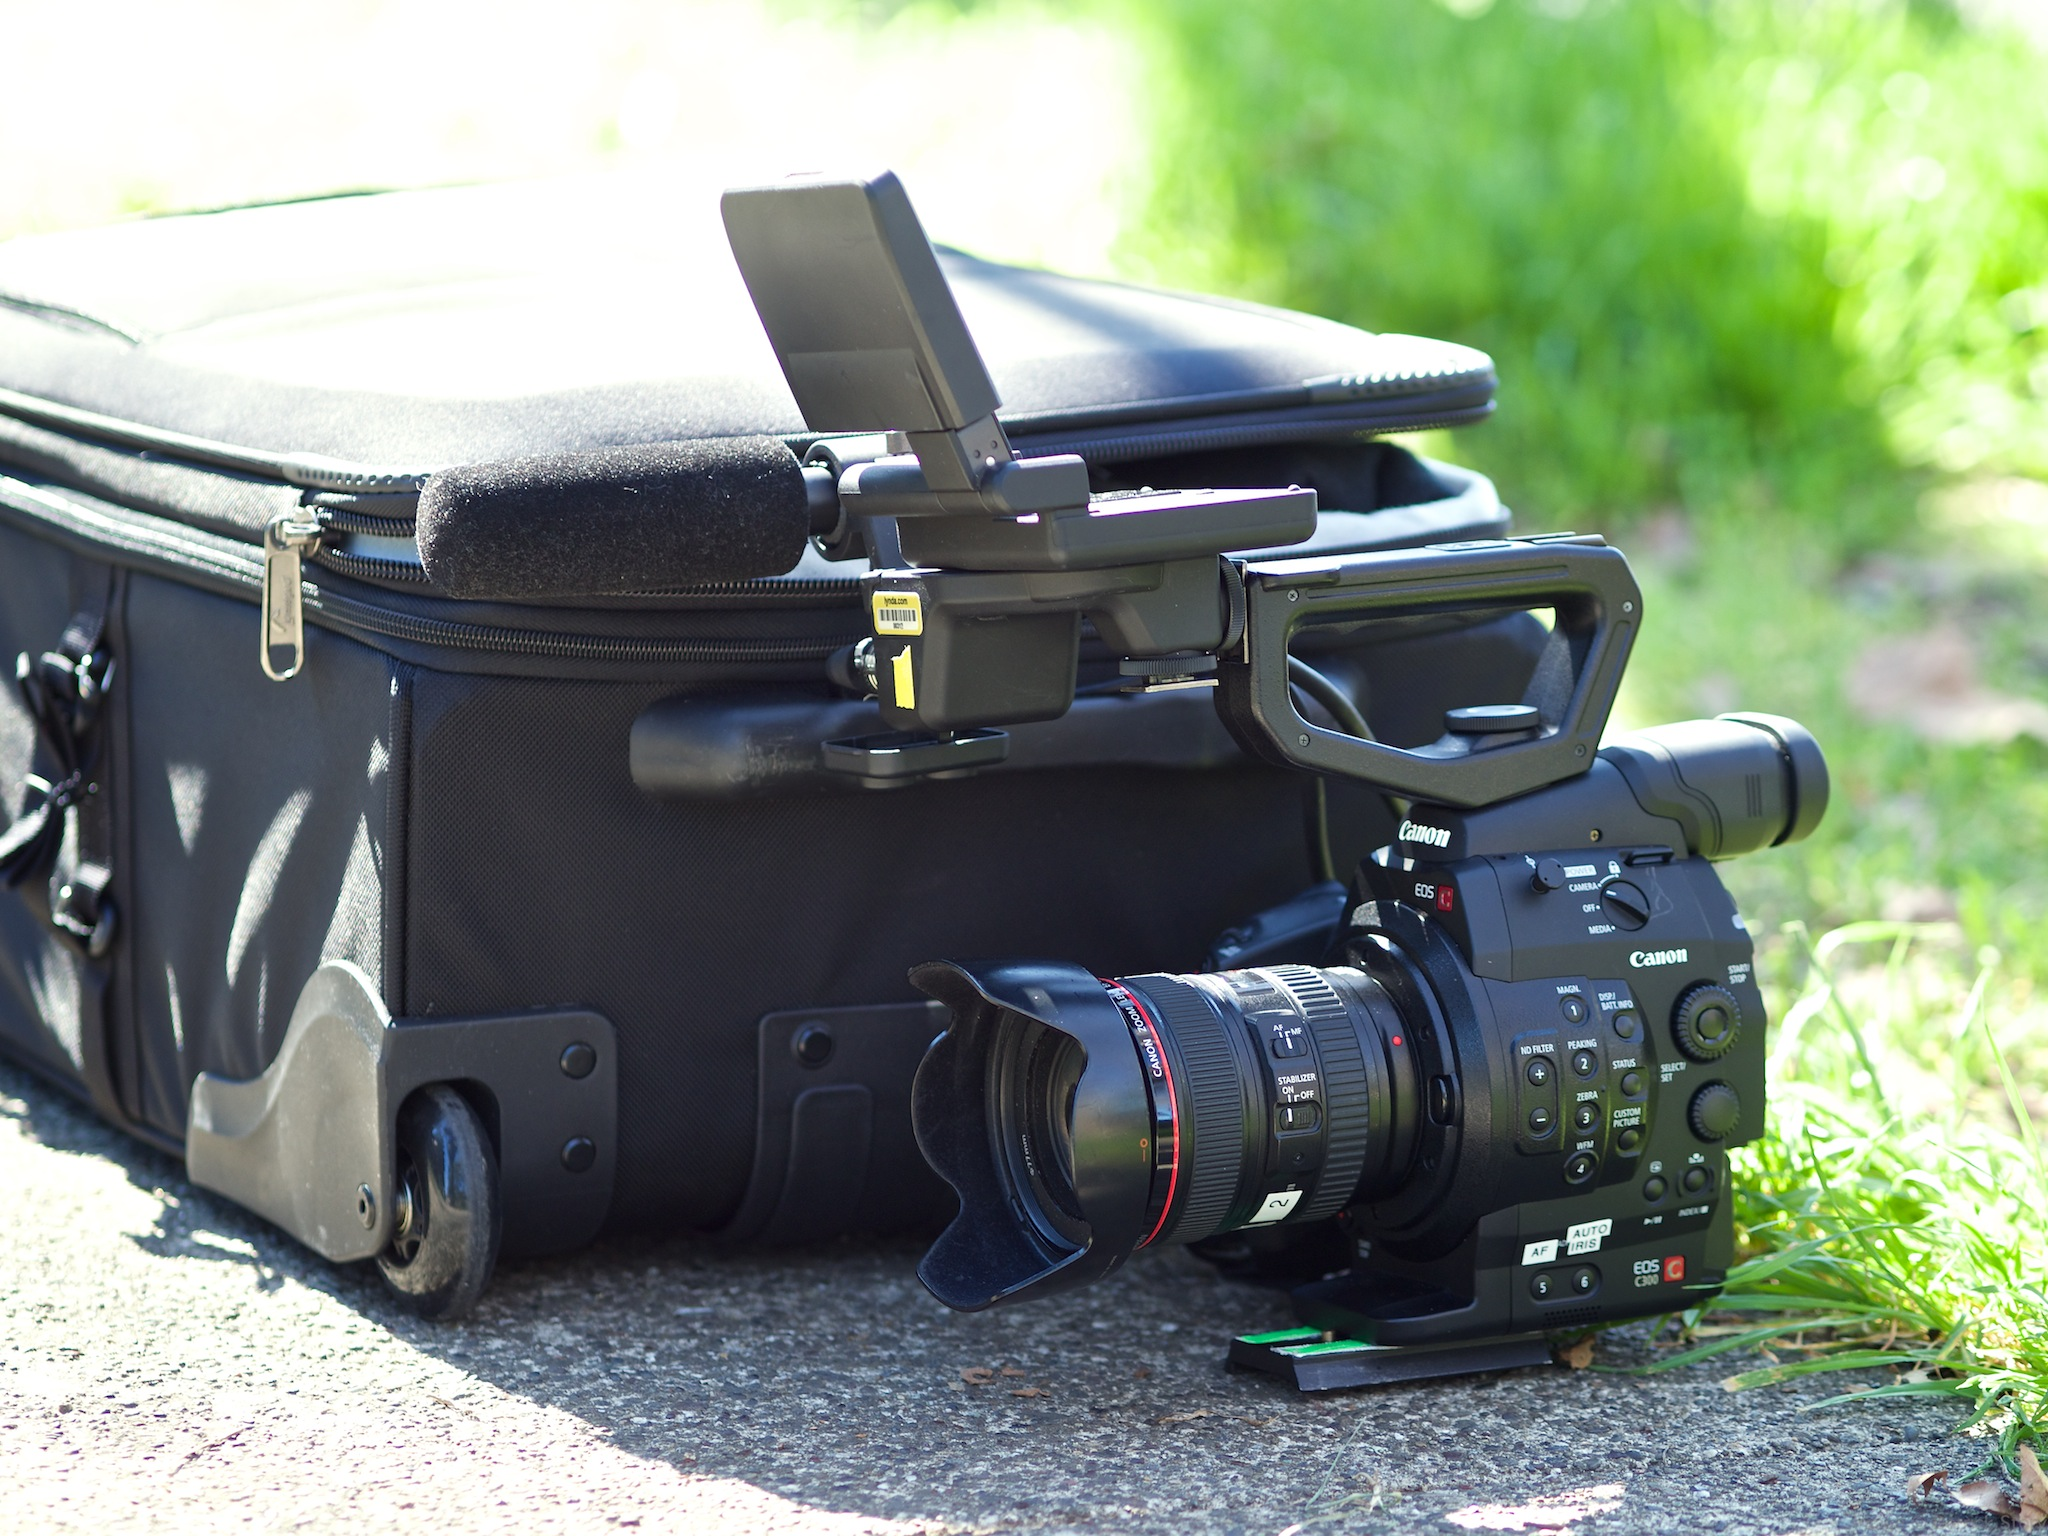 Pro Roller x300 with C300